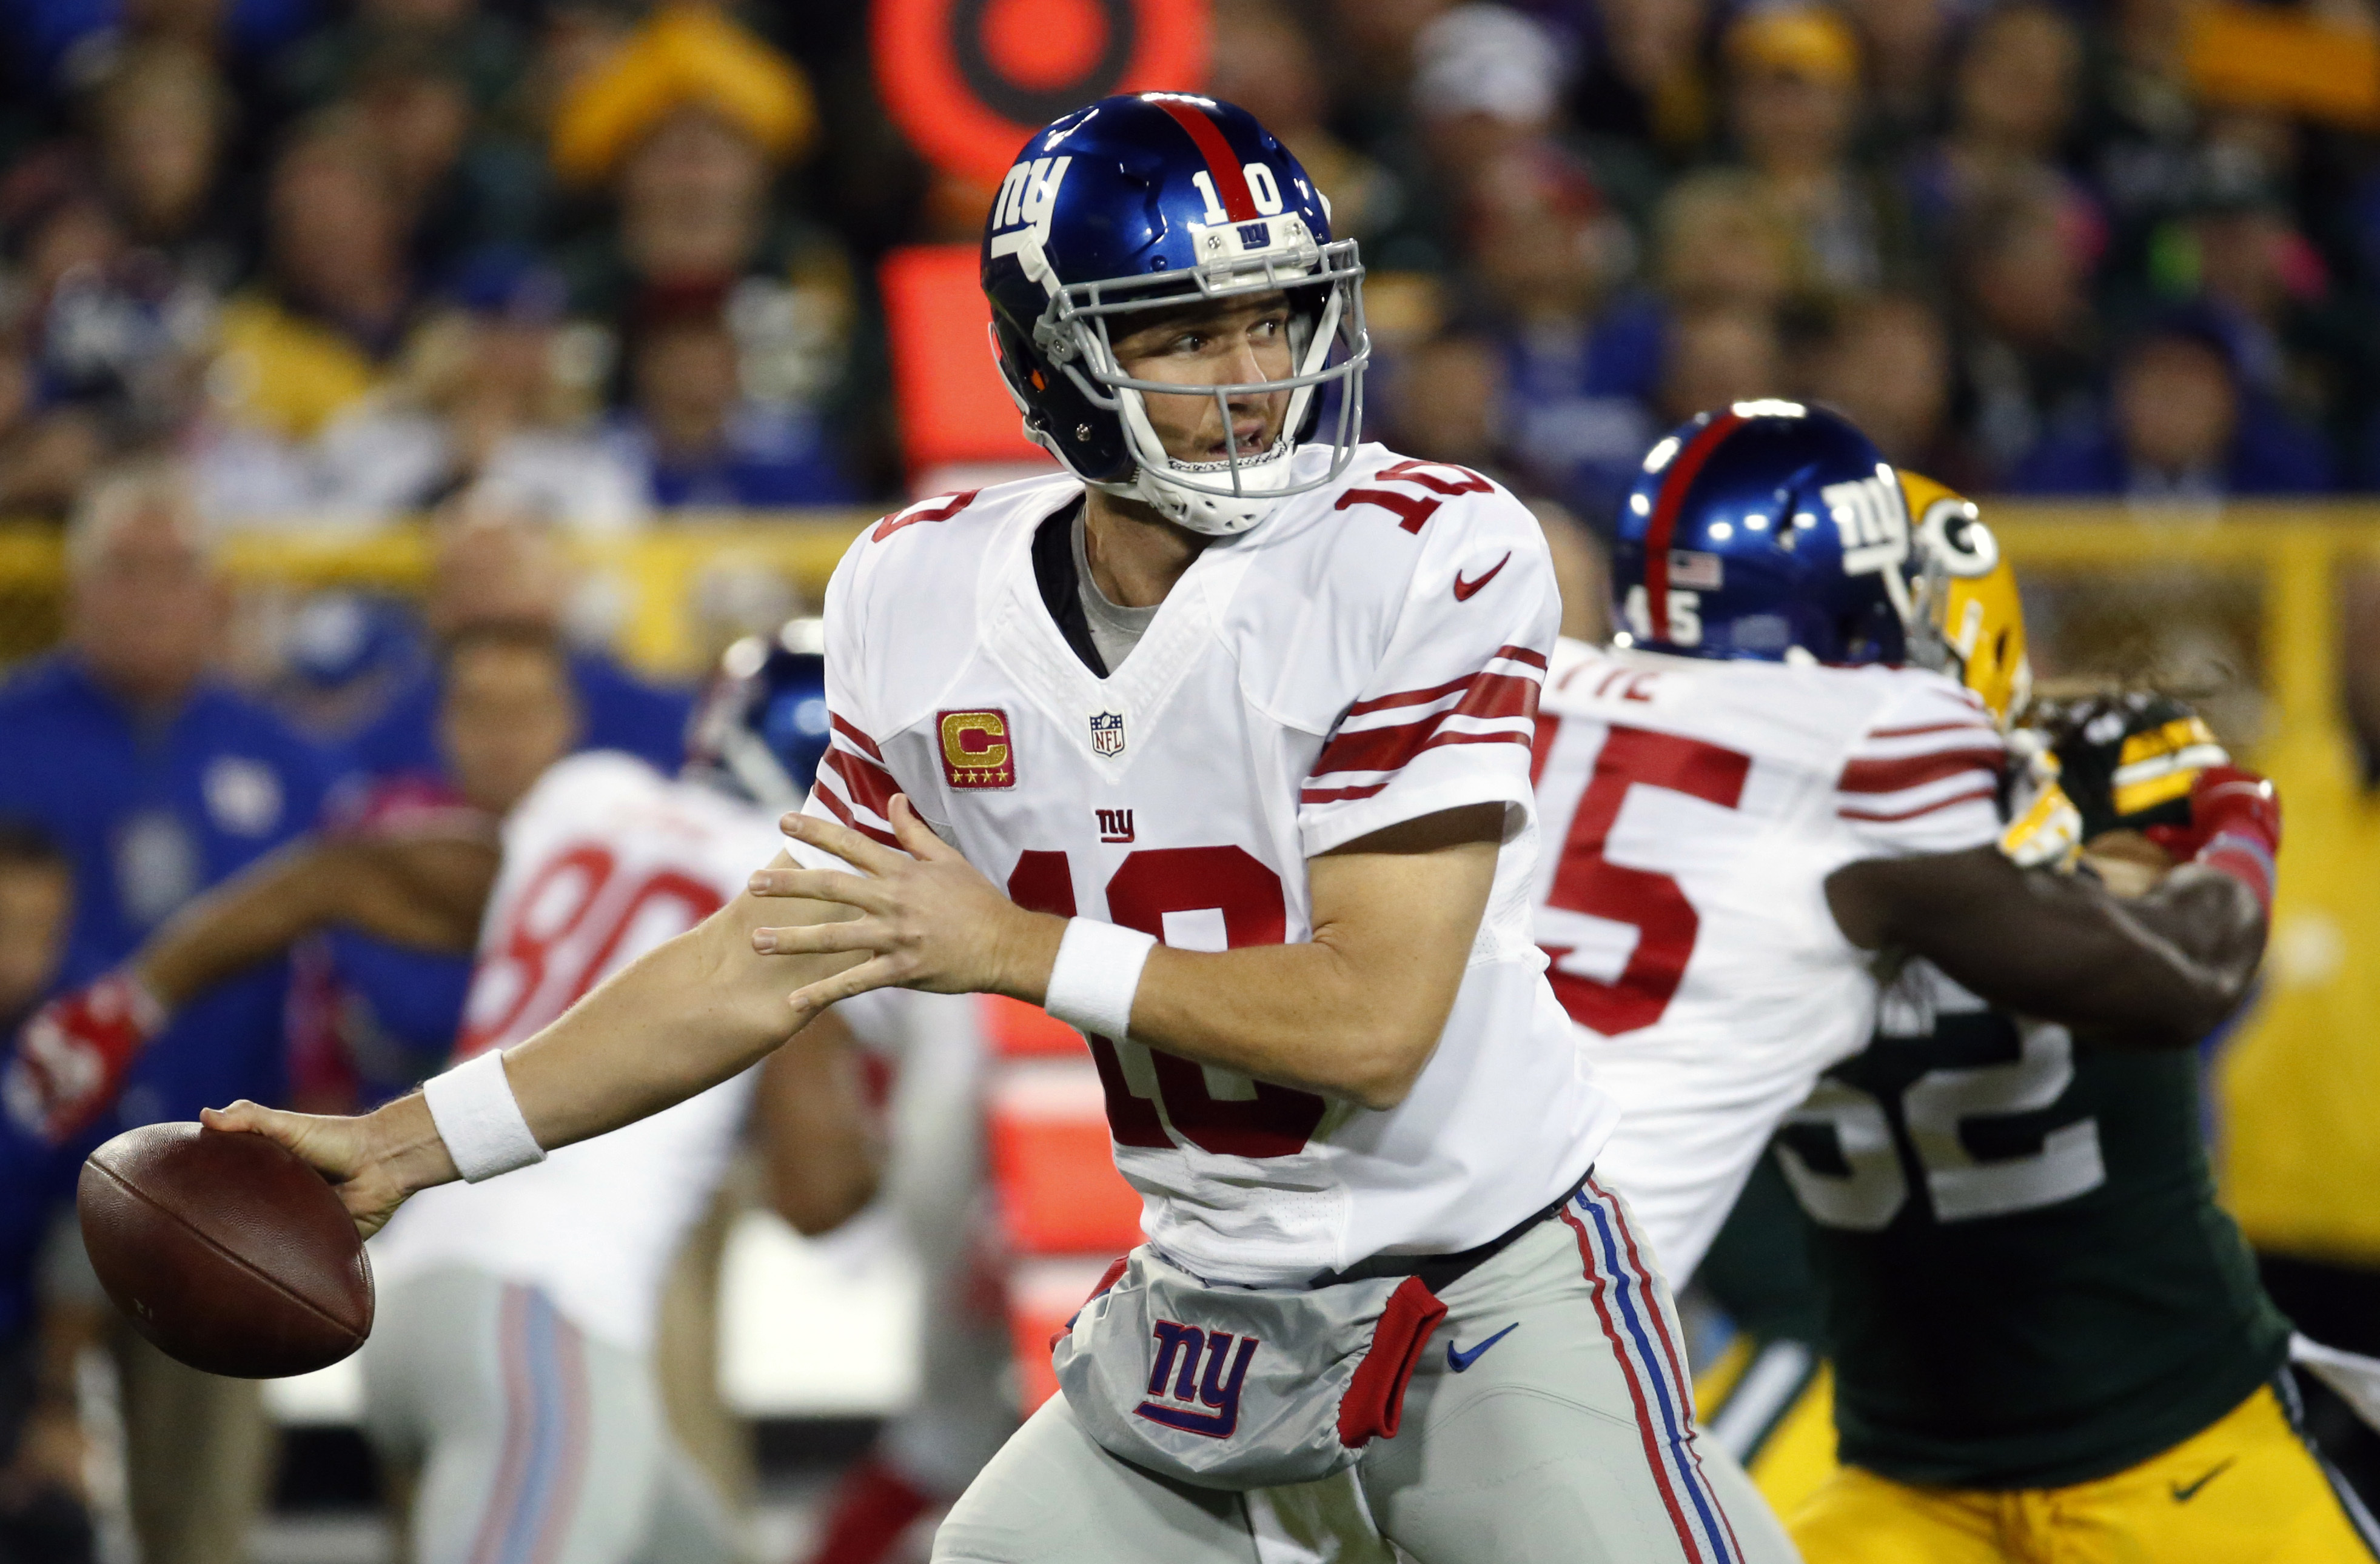 FILE - In this Oct. 9, 2016, file photo, New York Giants' Eli Manning throws during the first half of an NFL football game against the Green Bay Packers in Green Bay, Wis. Manning has not been sharp and the offensive line has been inconsistent. (AP Photo/